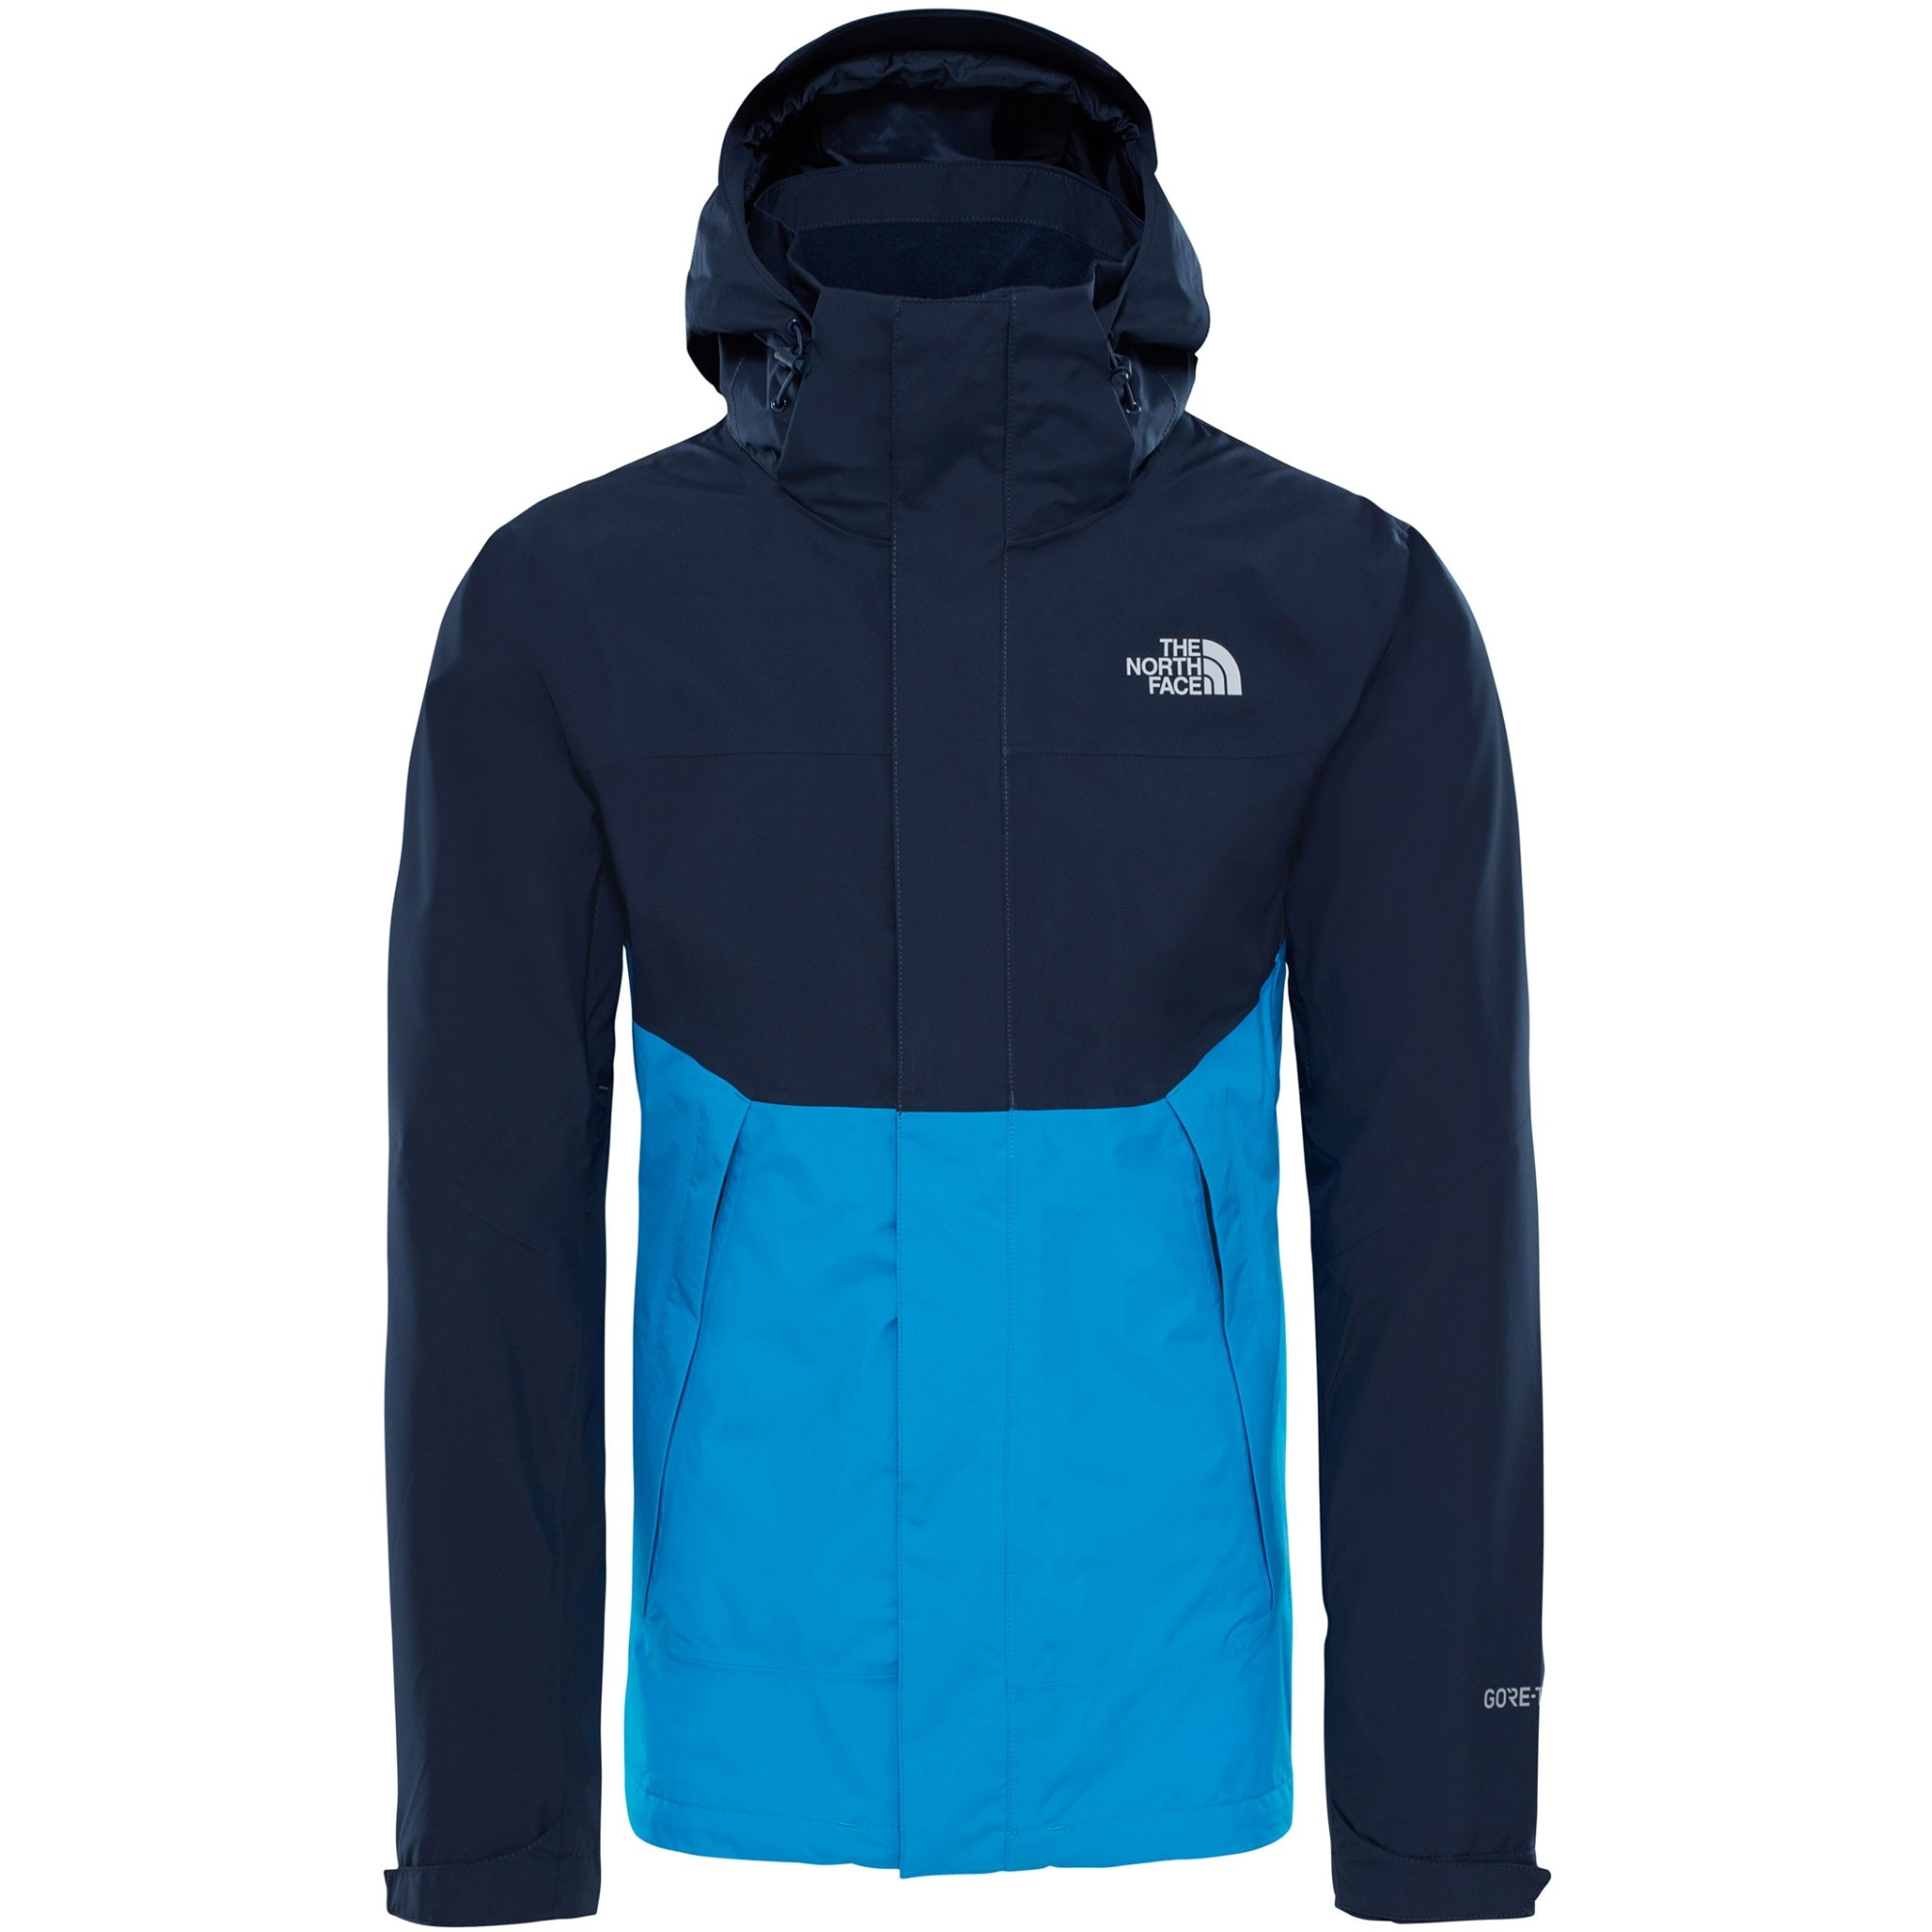 The North Face Mountain Light II Men's Shell Jacket  - Urban Navy/Hyper Blue